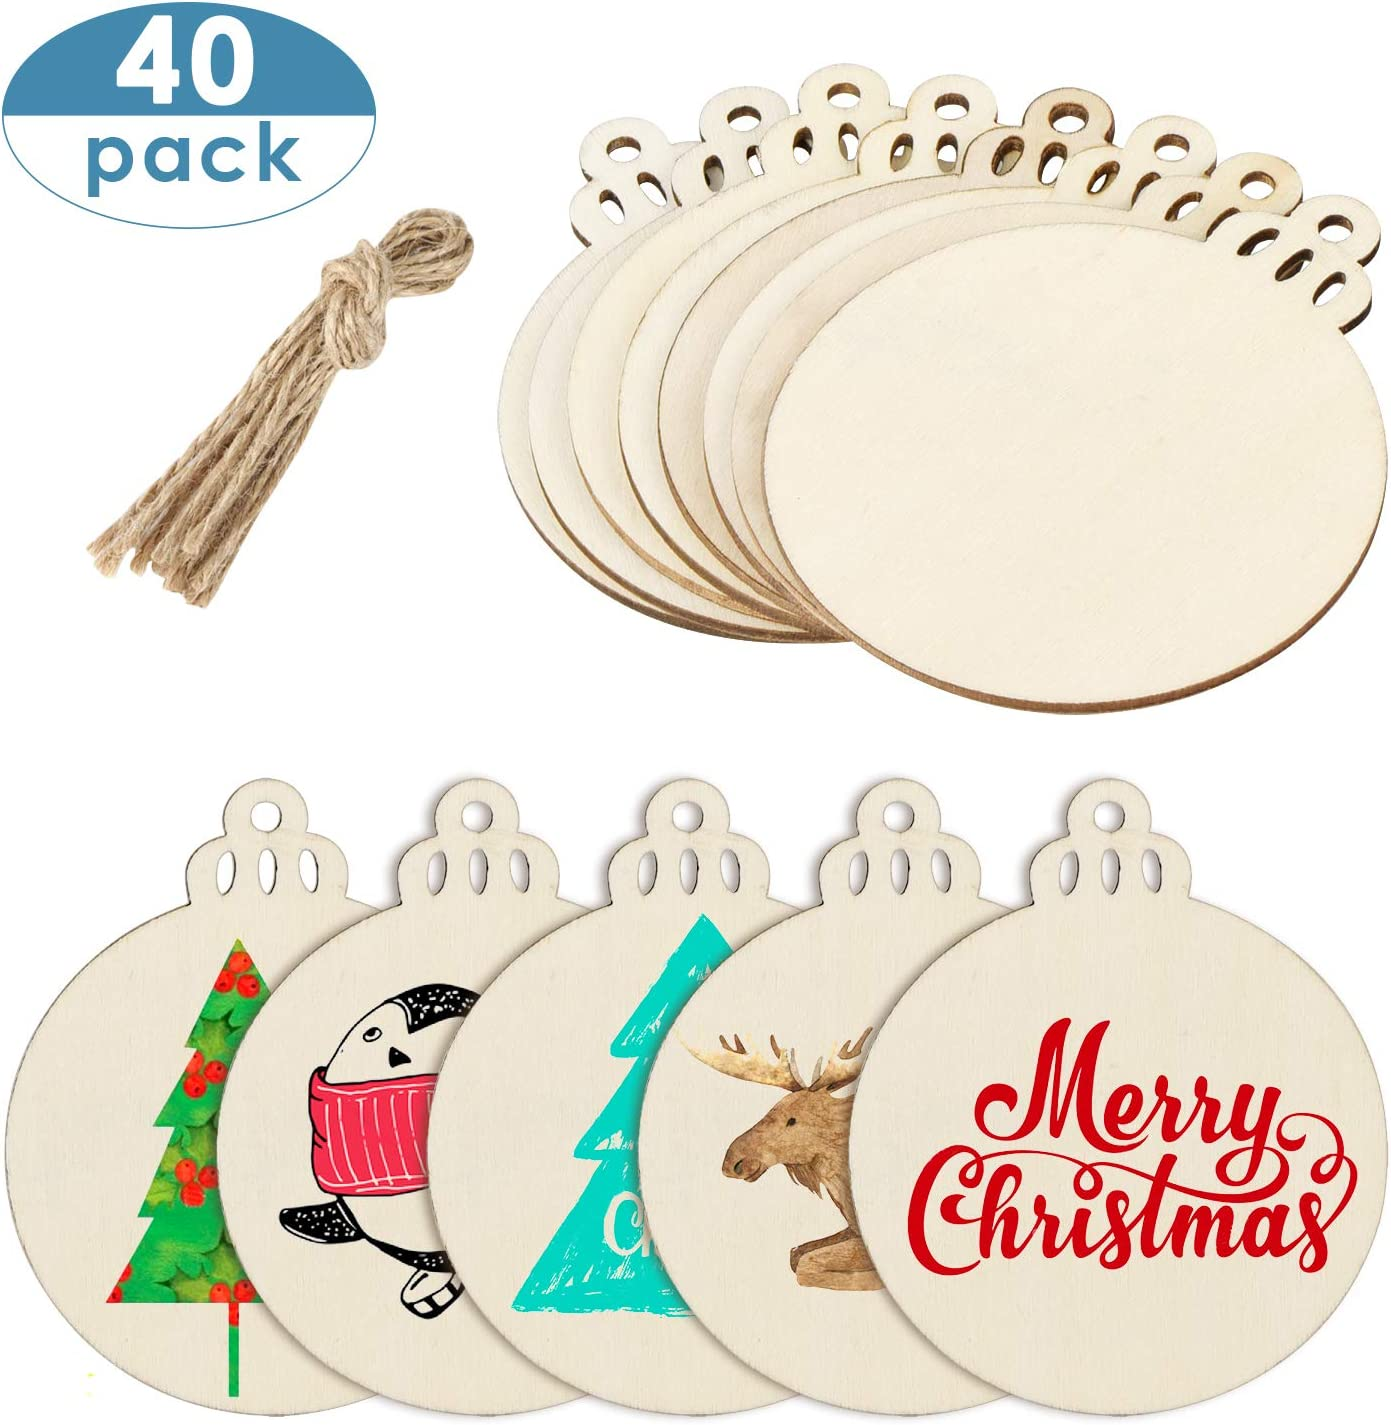 MELLIEX 40pcs Unfinished Wooden Round Ornaments Slices Natural Wood Blanks Bauble Discs with Holes for Christmas Decoration Hanging DIY Craft 71nkTv6mYgL